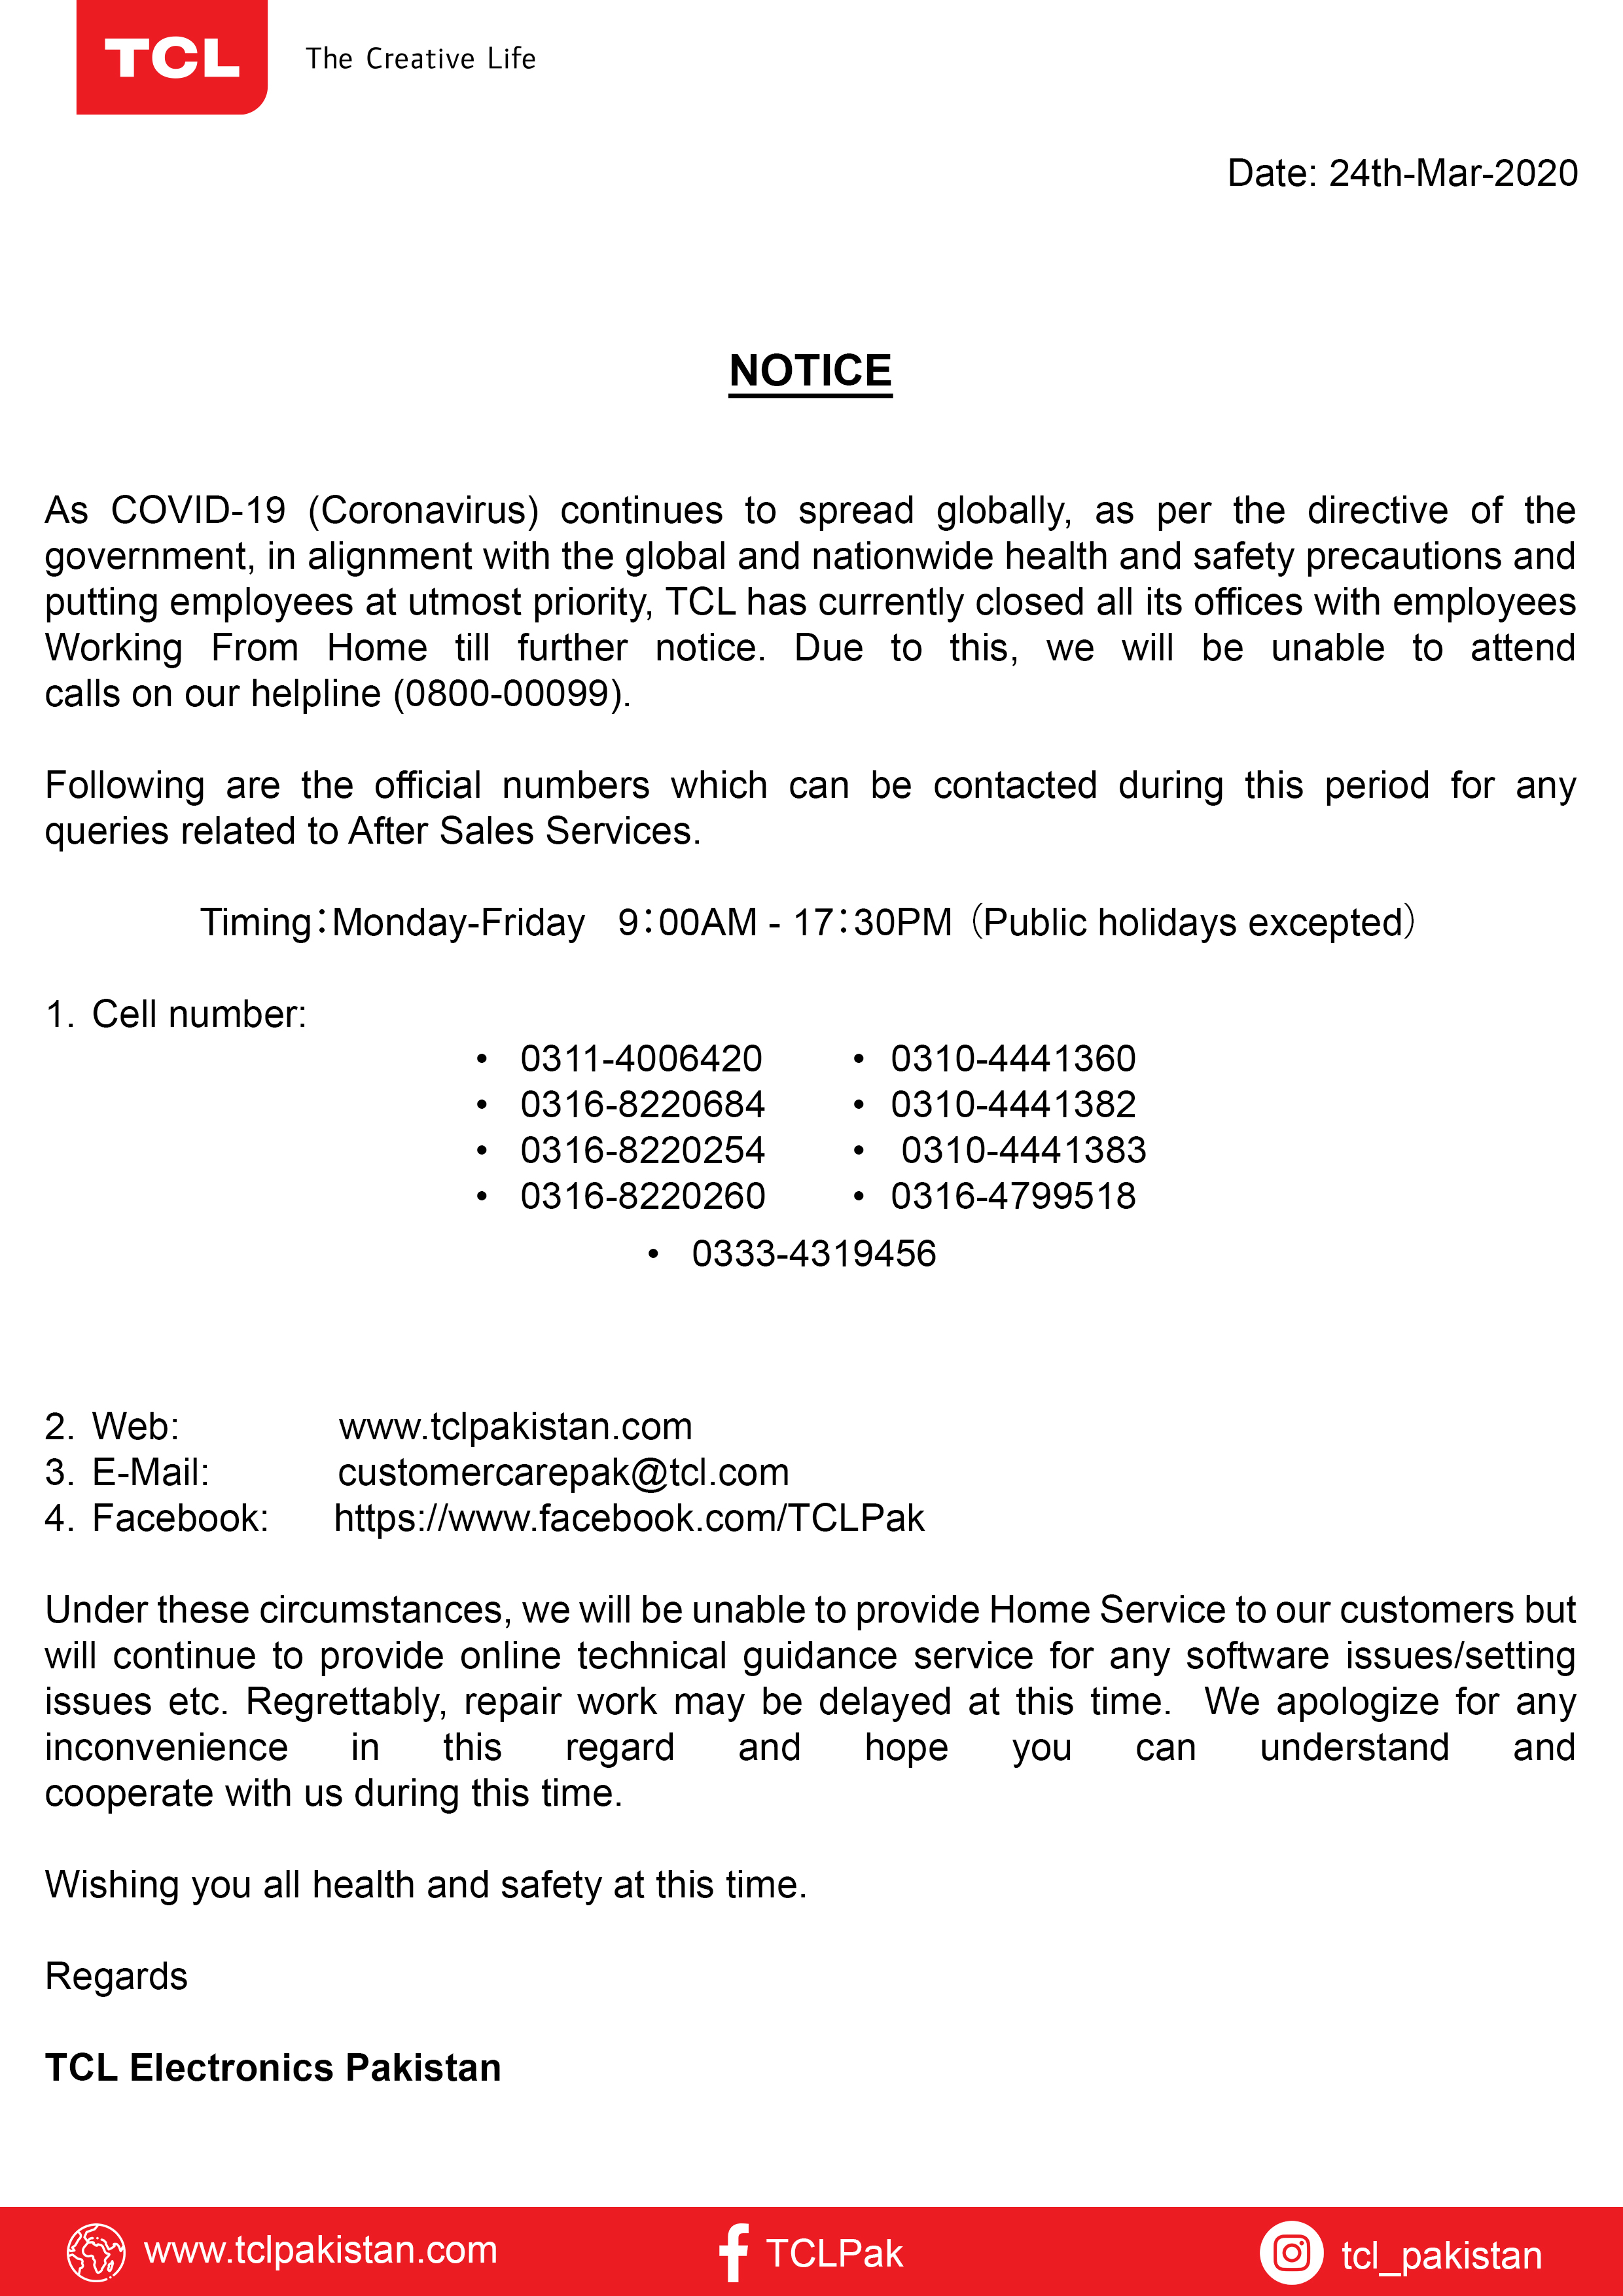 Important Notice to All - Covid 19 Measures